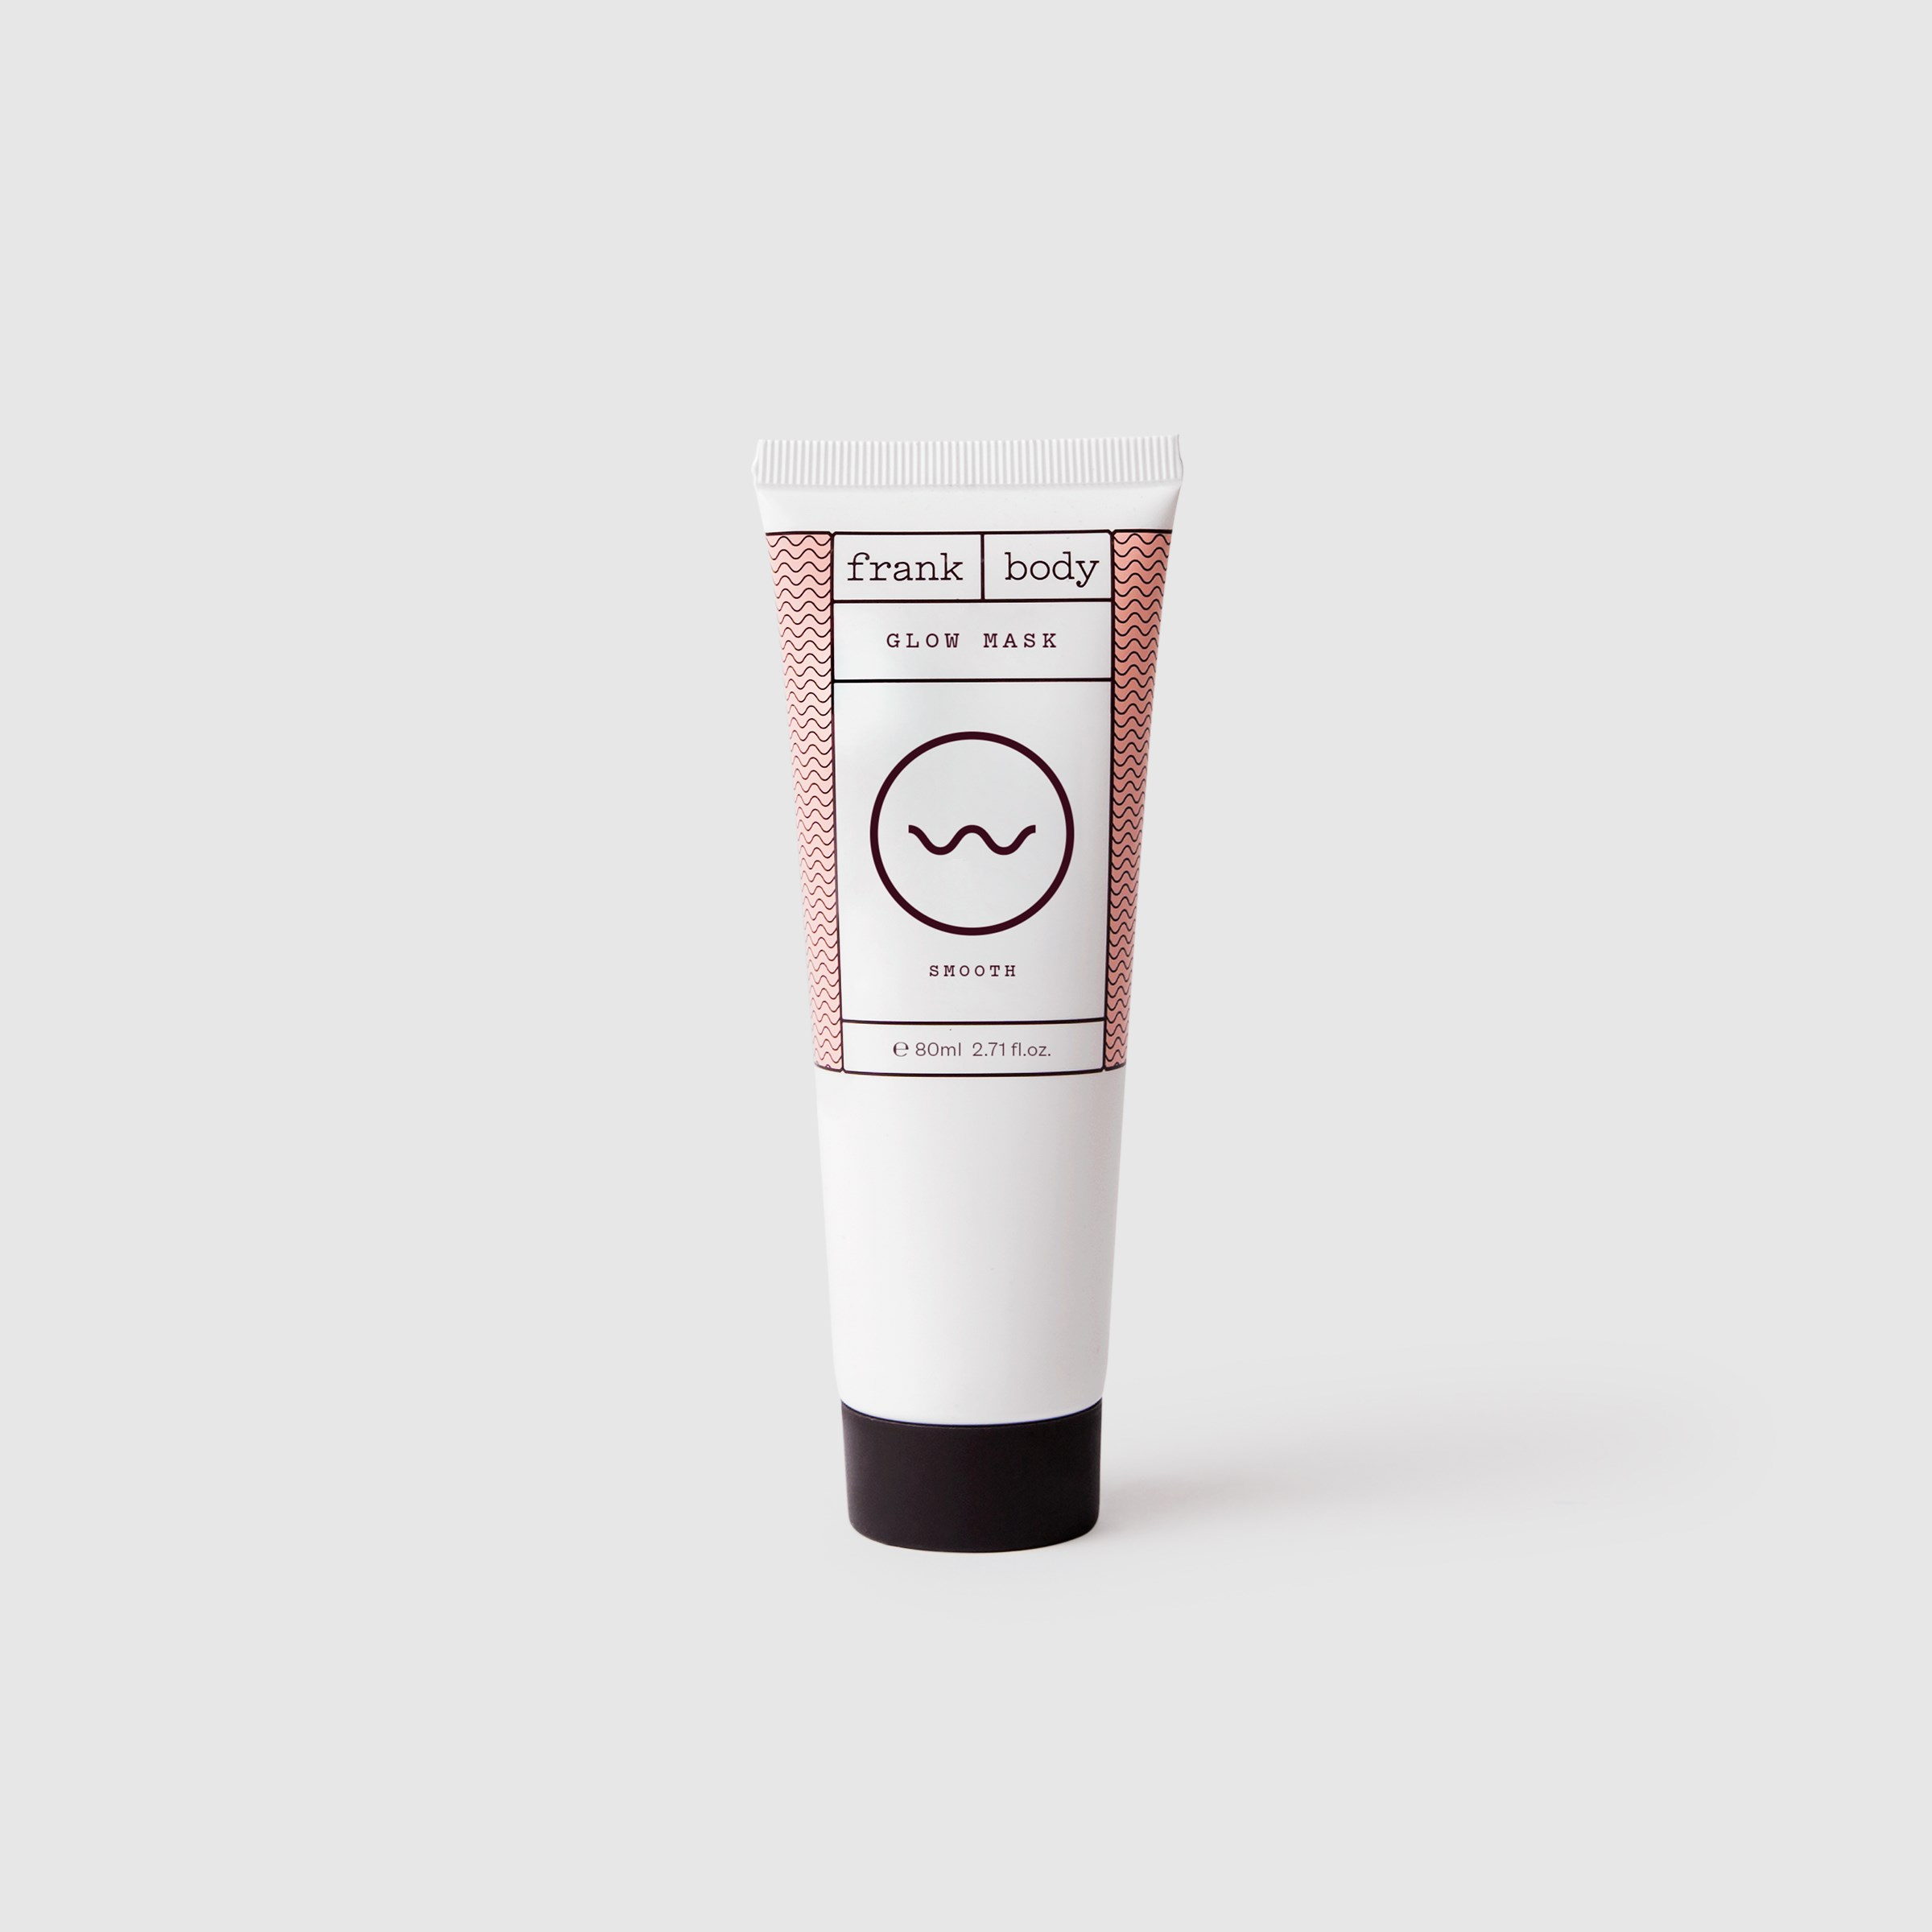 """[Frank Glow Mask](https://au.frankbody.com/products/glow-mask target=""""_blank"""" rel=""""nofollow""""), $21.95.    *""""First off, this face mask smells like vanilla latte ice-cream. The consistency is like a smooth, creamy frosting and is just the thing you want to put on your face first thing in the morning. I go about my normal morning routine; make a coffee, have some toast, catch up on the news, and then when I'm done, I simply wipe it off, and my face looks like I actually got more than eight hours of sleep. TEN, even. I noticed dewier, calmed, refreshed and plumped skin and I didn't even need to go HAM with the foundation. I highly recommend it. Legit. Get this in your life""""* – Samantha Stewart, Online News & Entertainment Writer."""